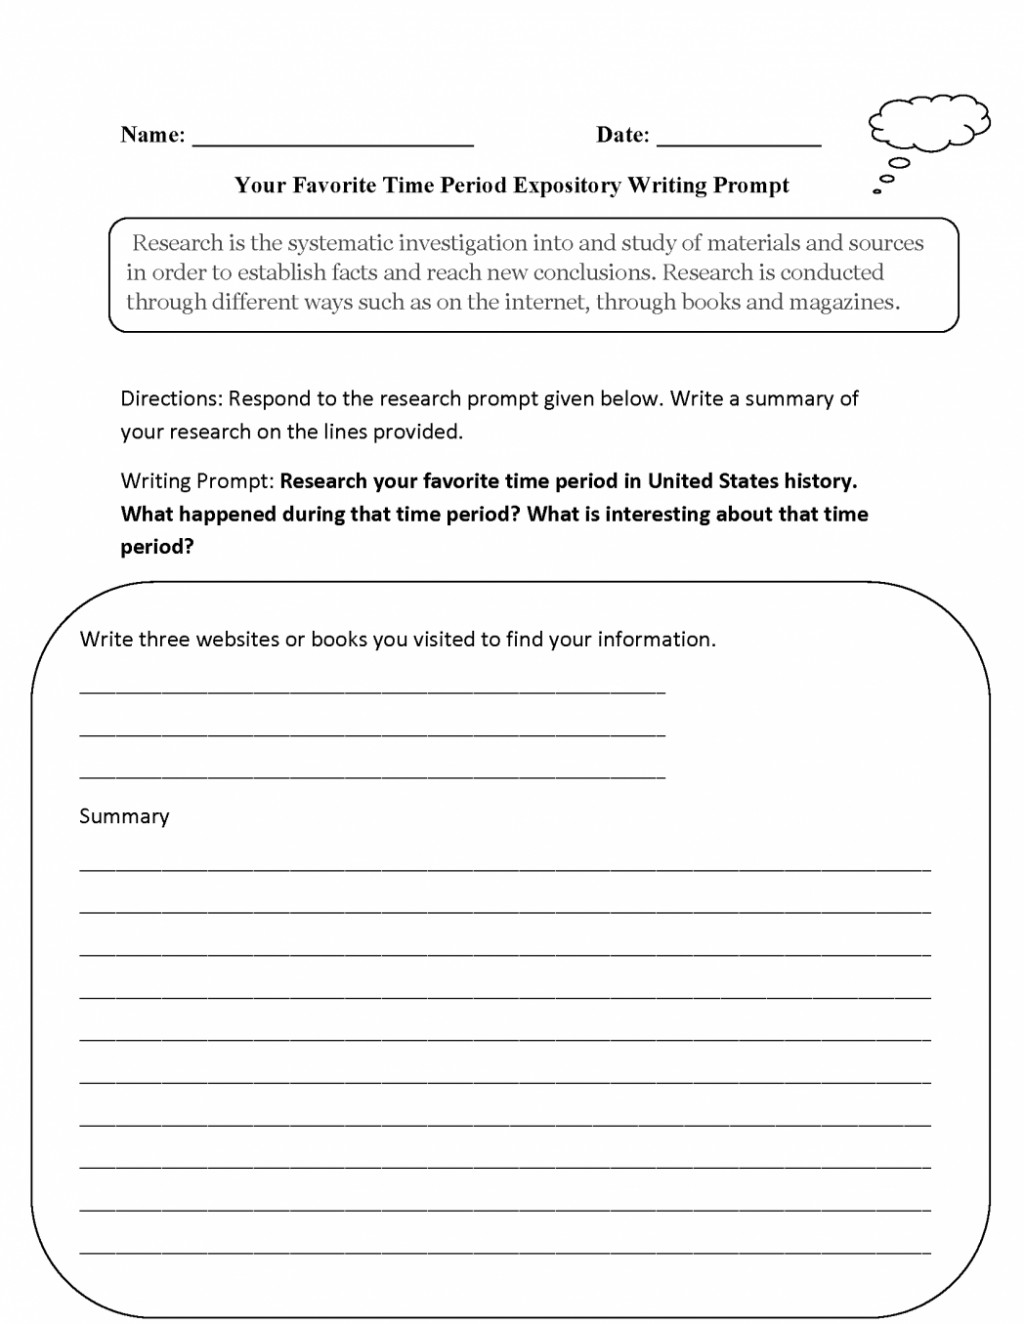 018 Essay Example Good Informative Topics Prompts Favorite Time Period Expository Writing P To Write An On The Topic Of Immigration Remarkable For 5th Grade Paper College Middle School Large